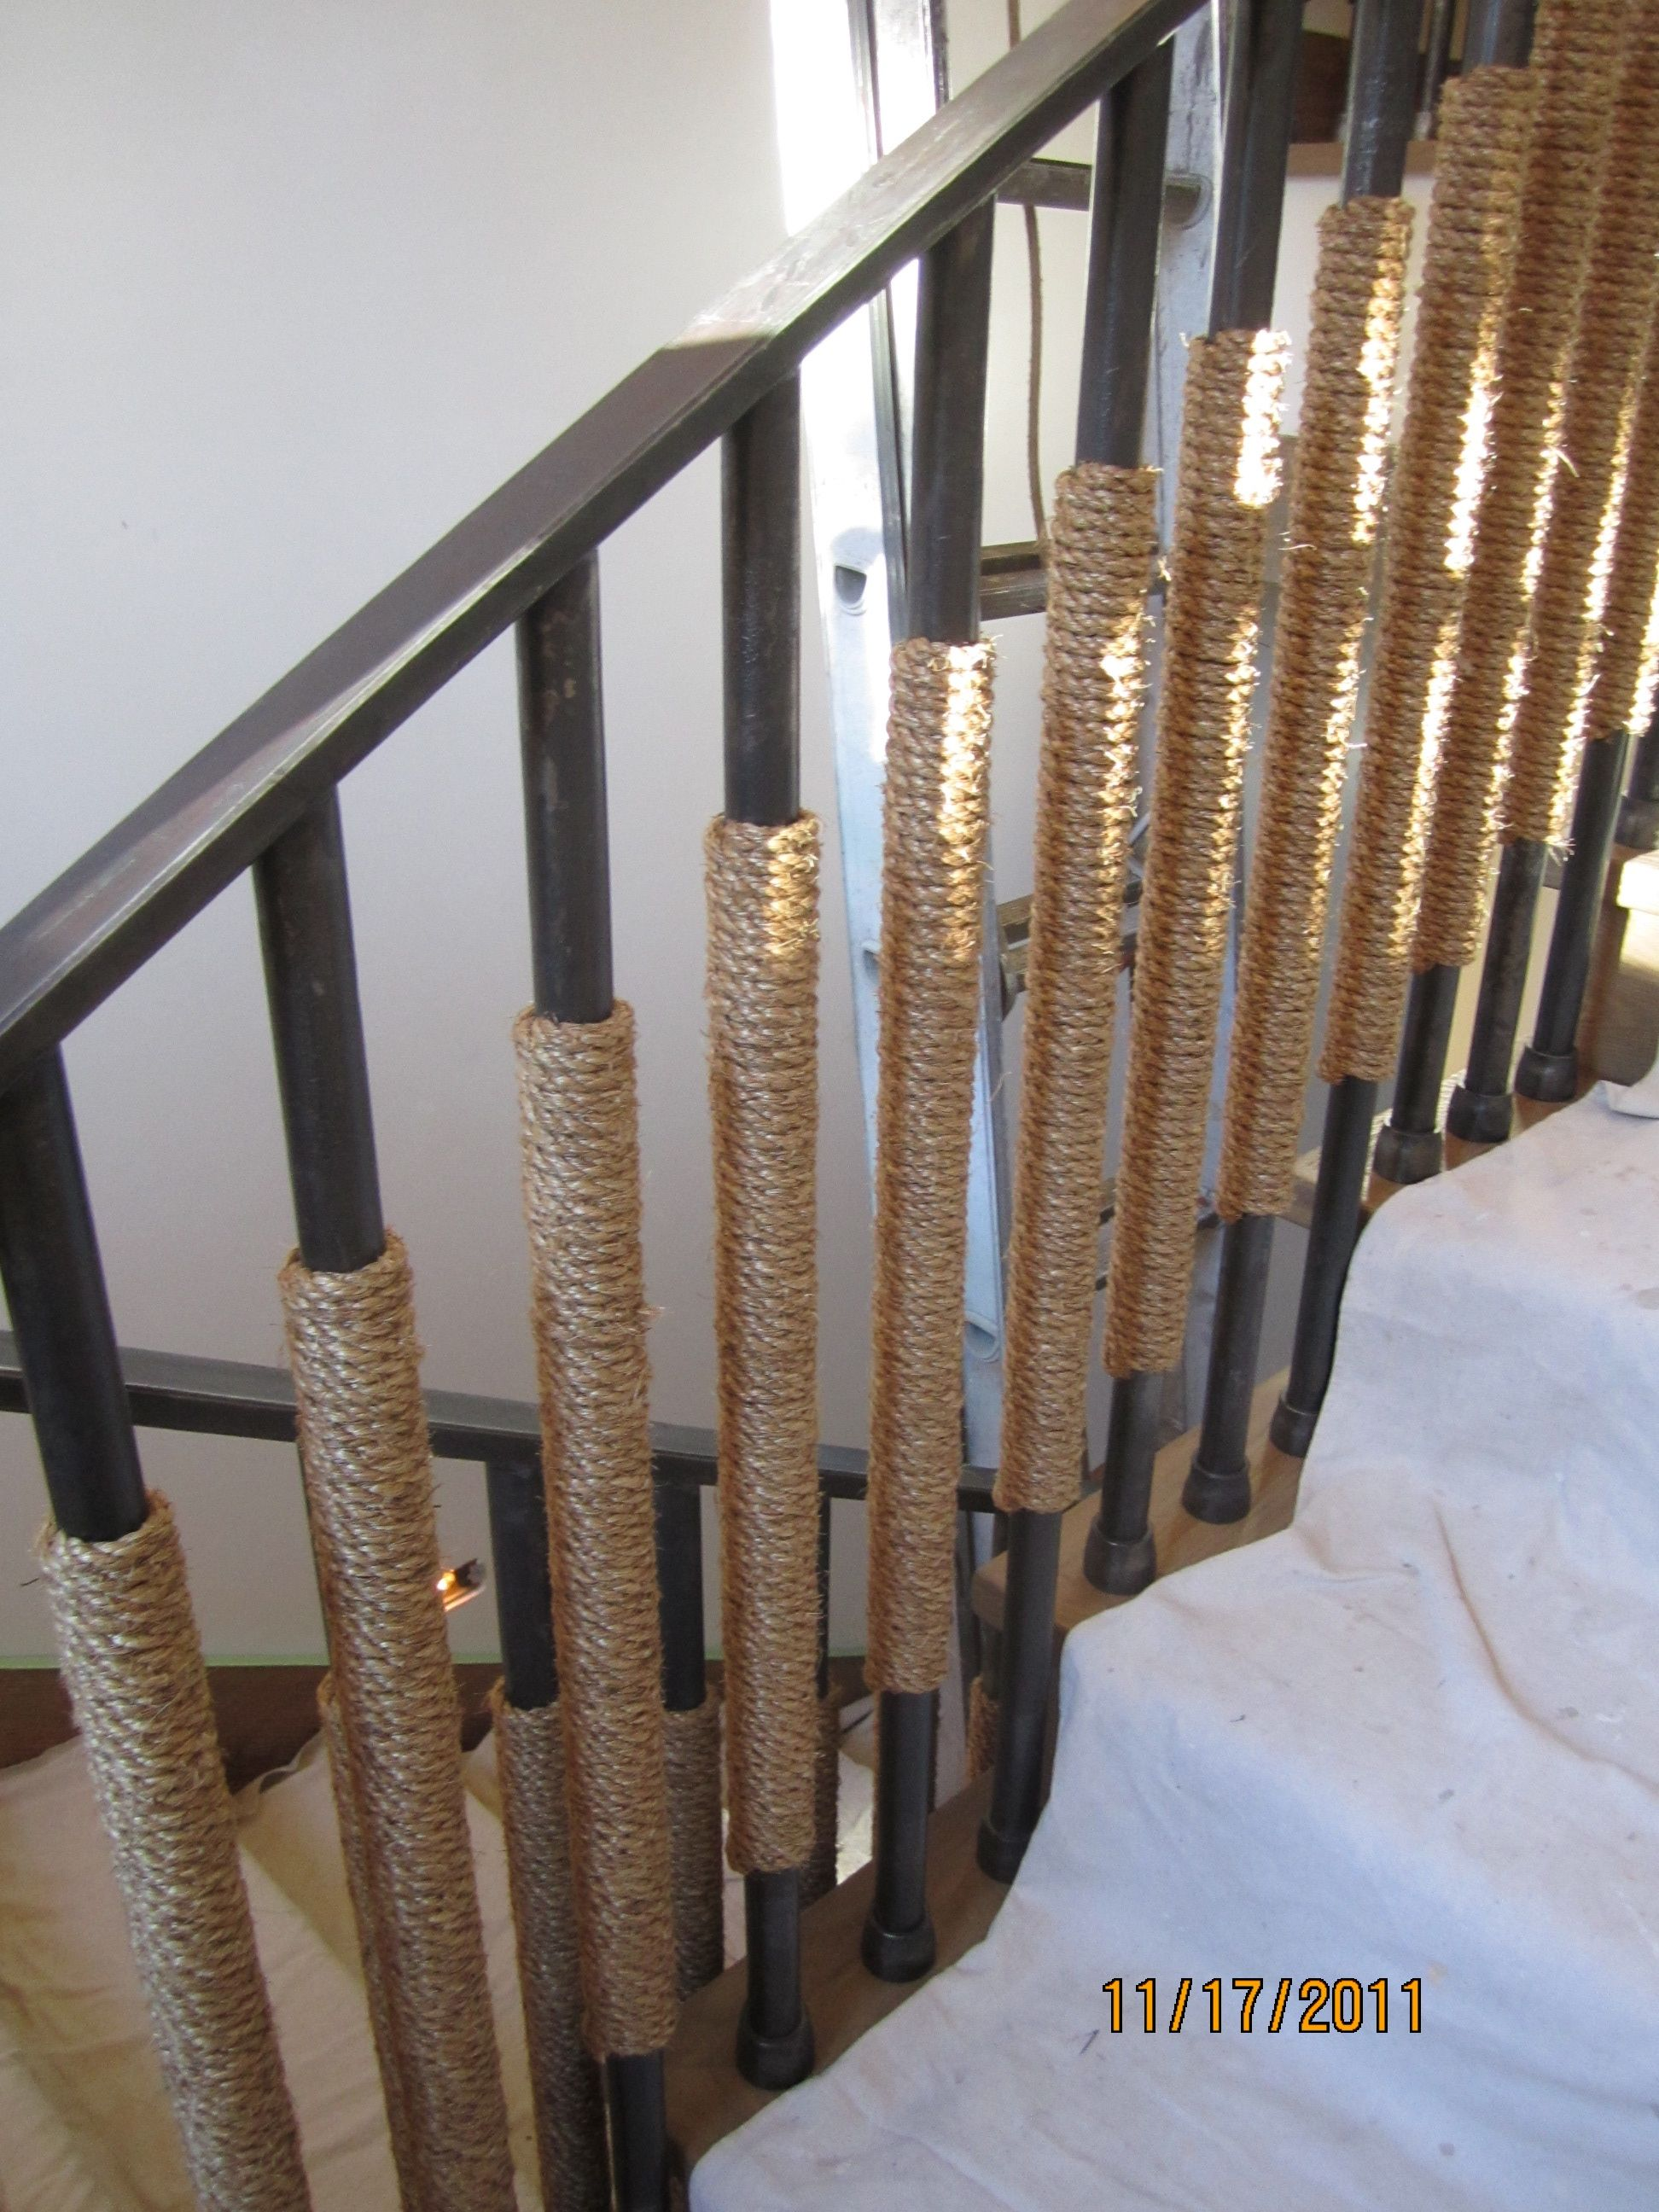 Merveilleux Rope Stair Rail Detail ~ I Could Do This Around The Ugly Old Wooden Rail  That I Have. Itu0027d Also Be A Great Way To Update A Resale Shop Floor Lamp  For ...